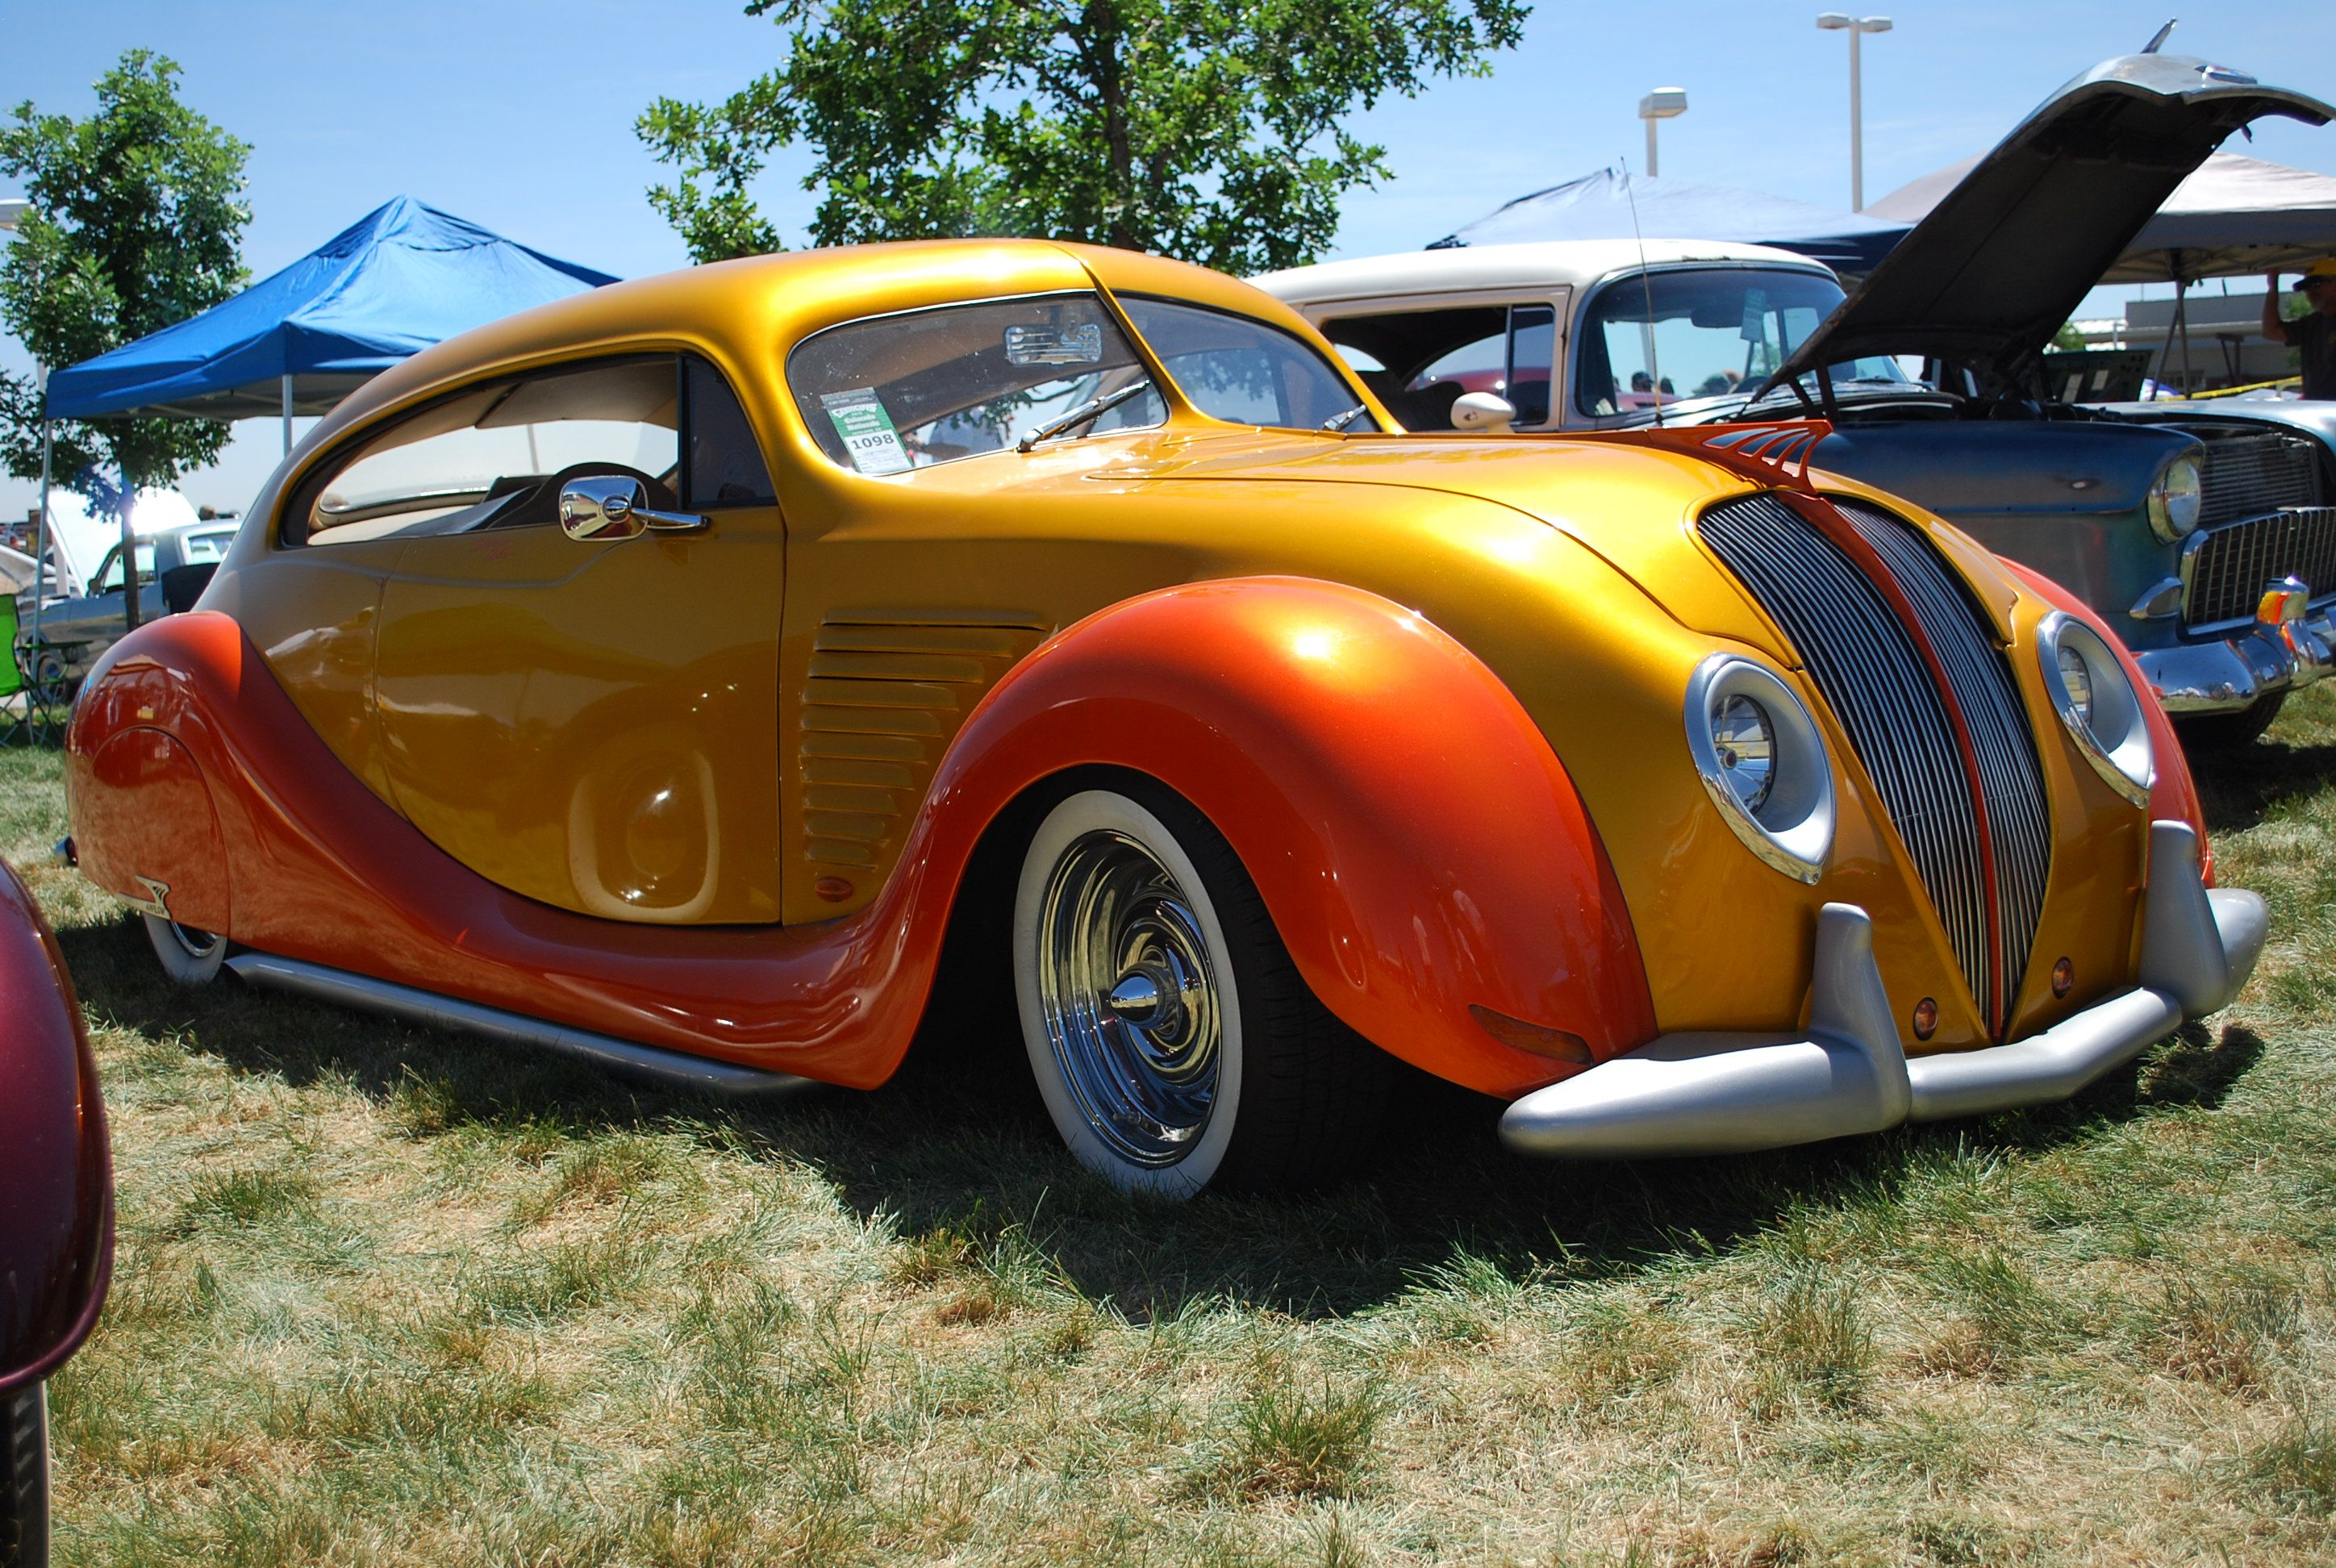 OLD CLASSIC CARS - Google Search